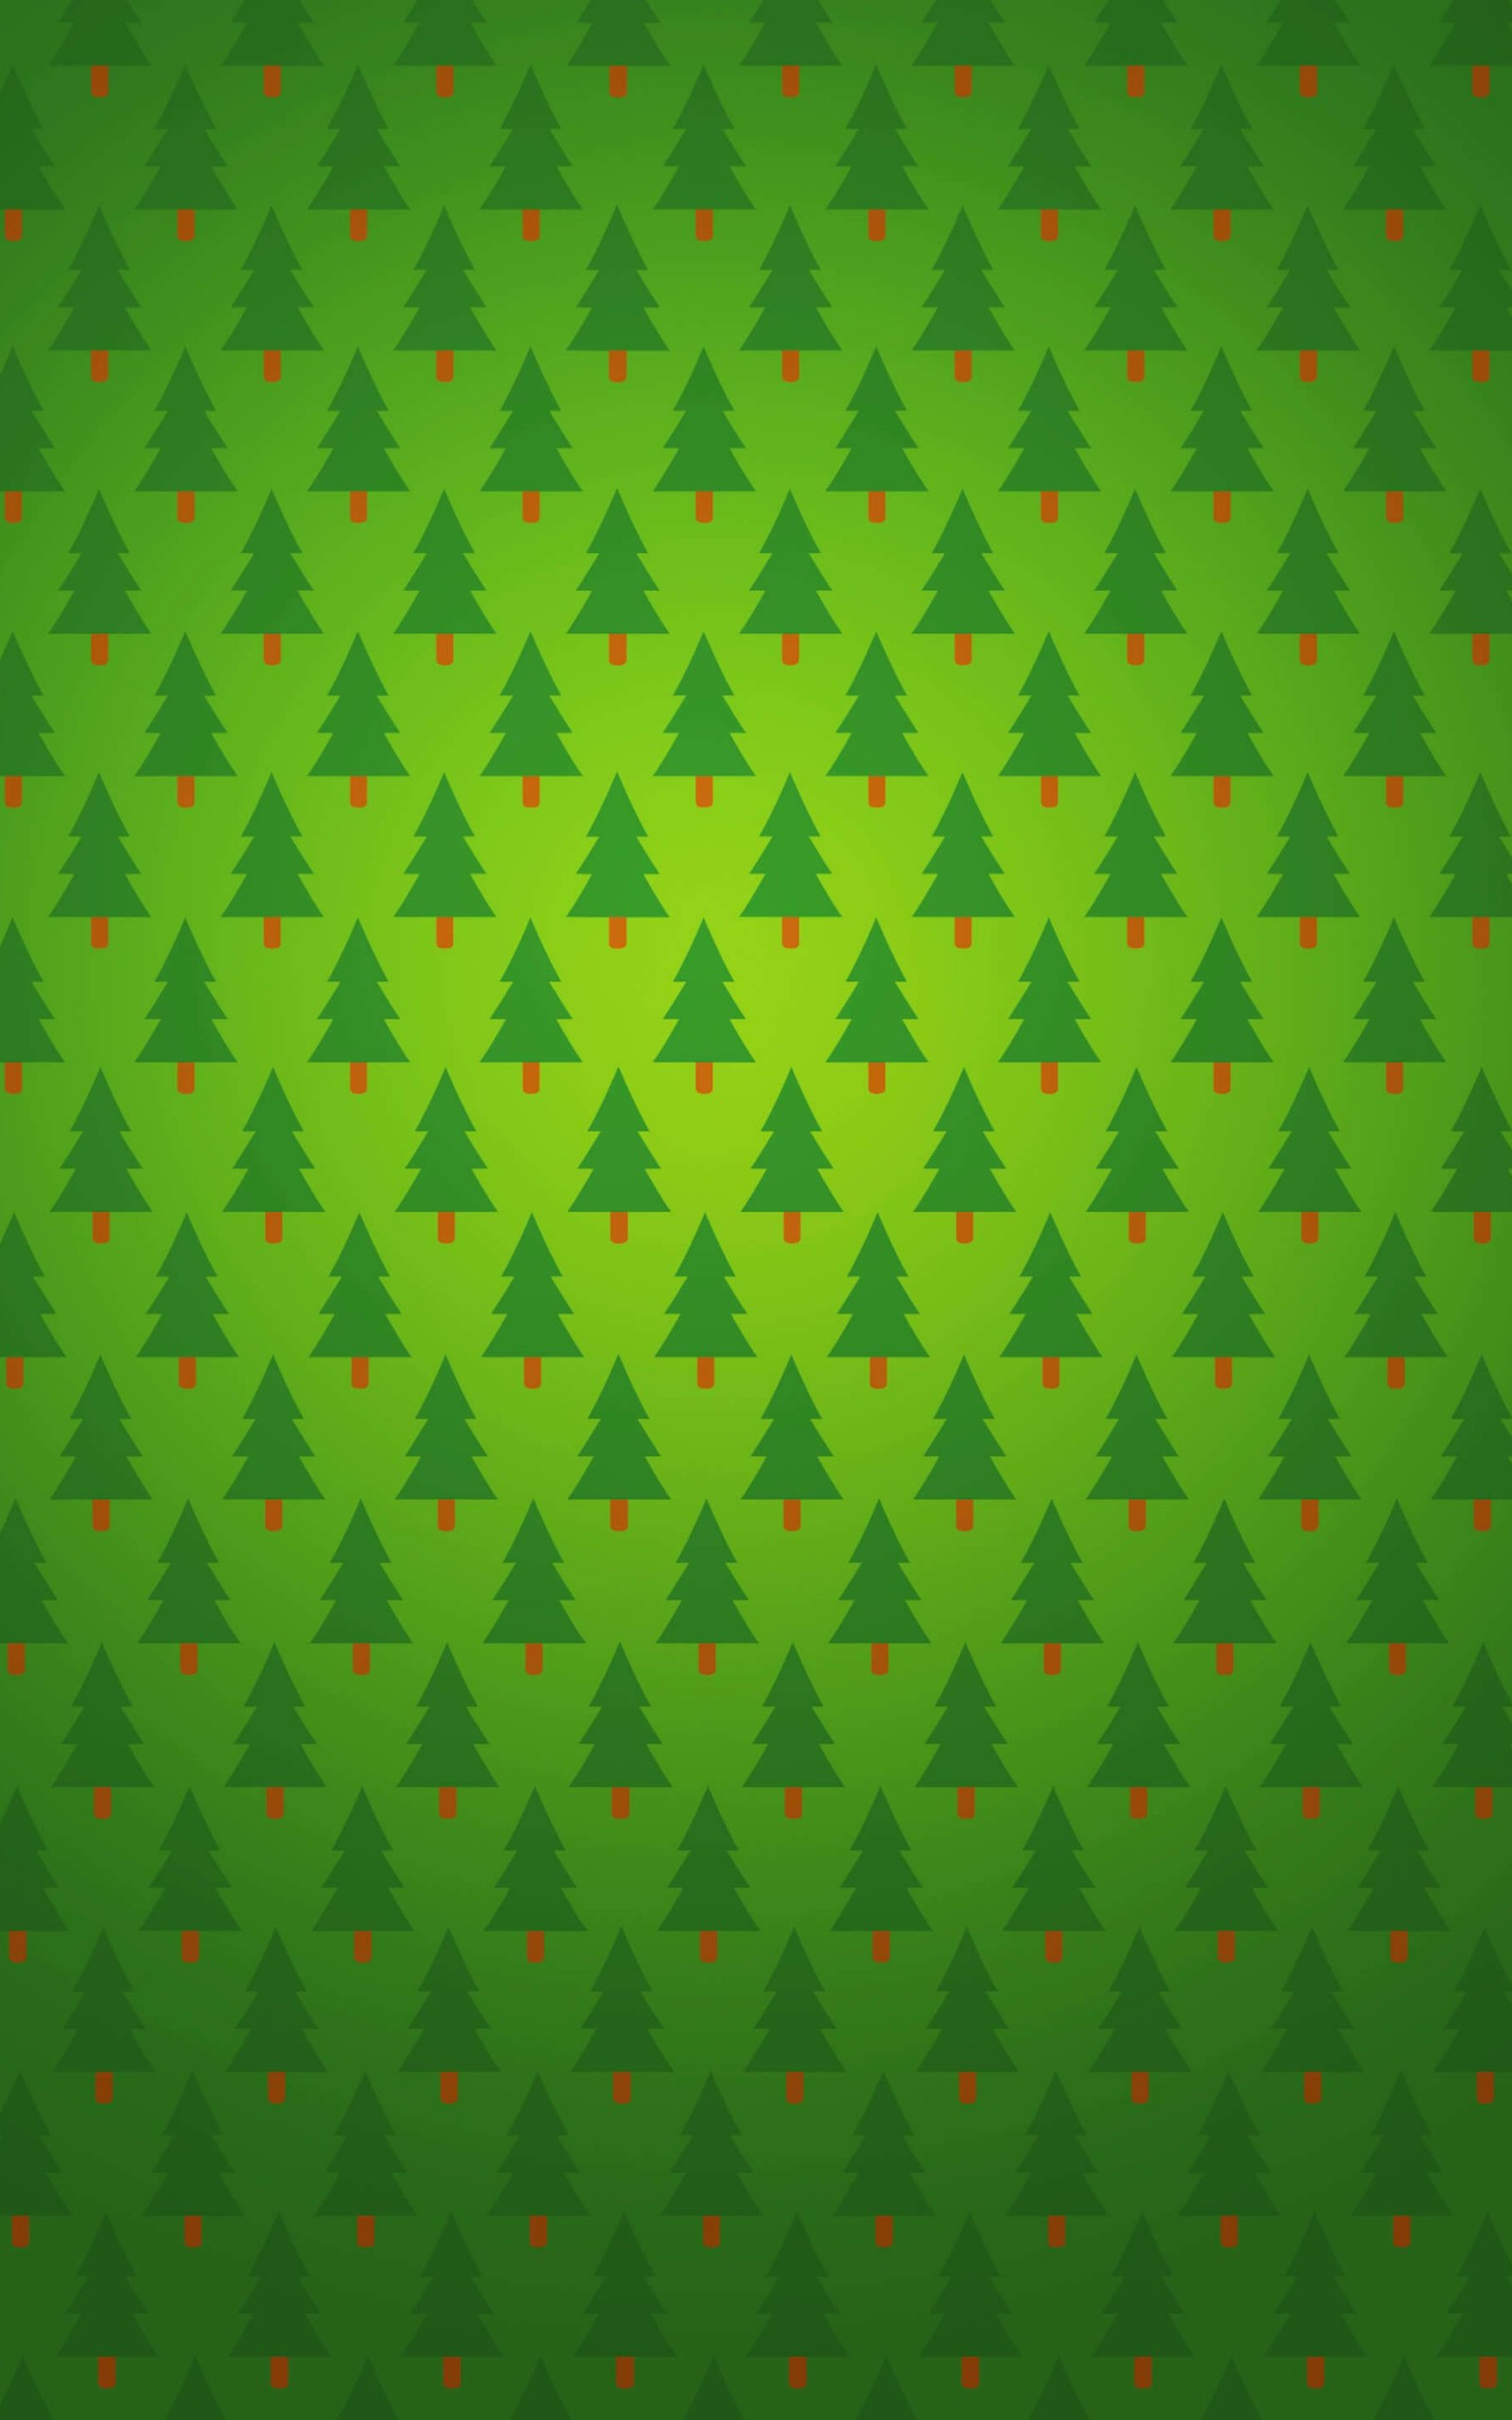 Christmas Tree Pattern Wallpaper for Amazon Kindle Fire HDX 8.9